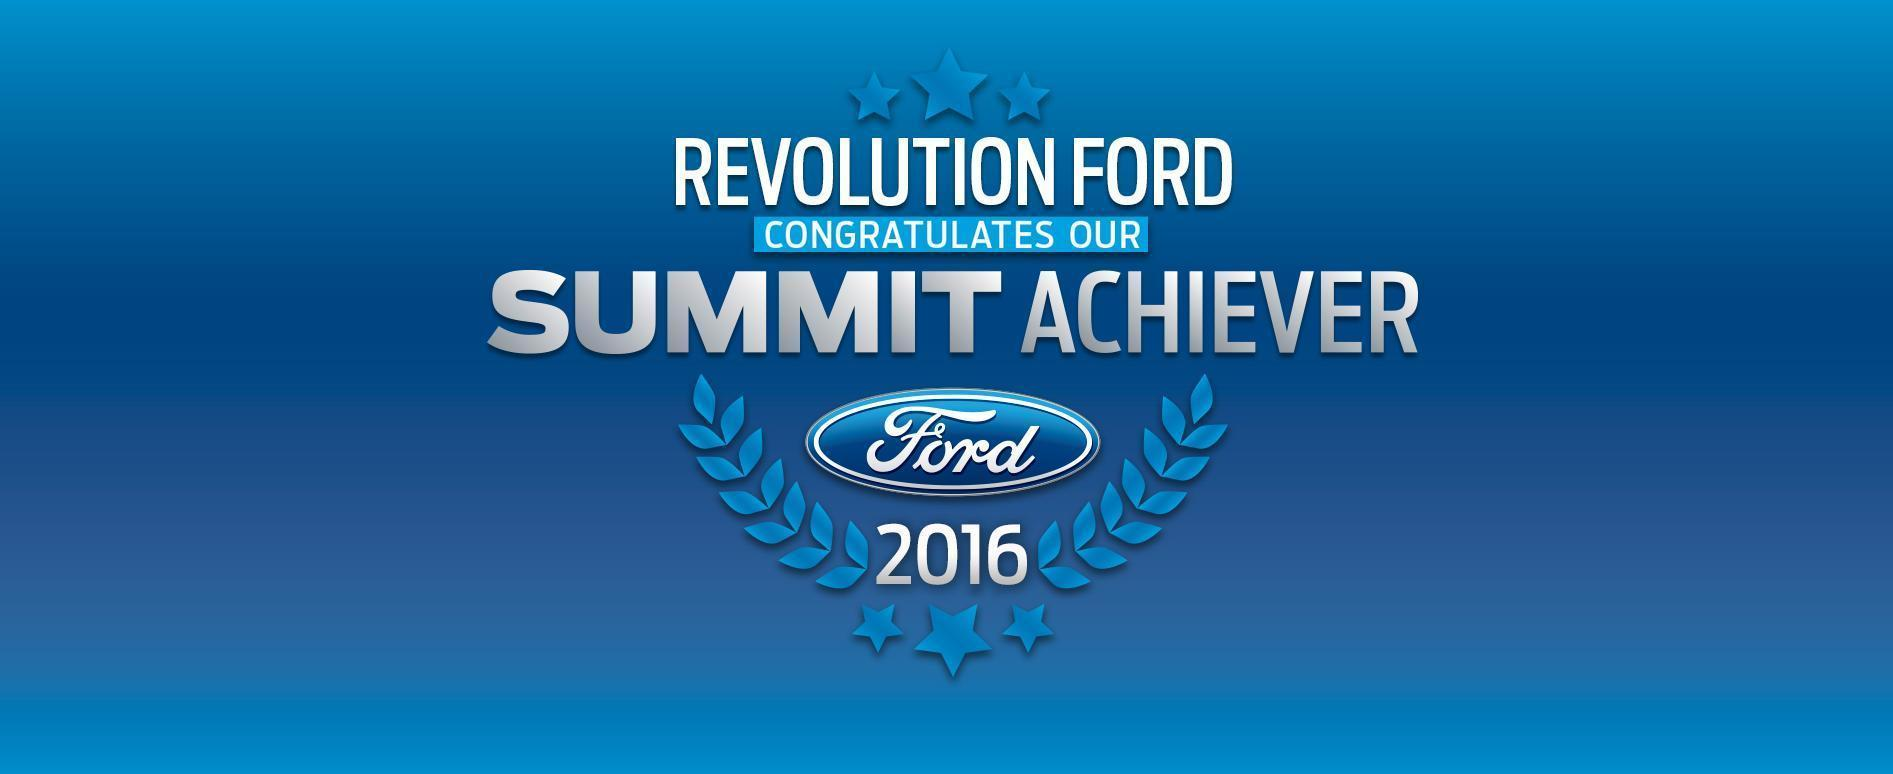 Revolution Ford Summit Achiever 2016